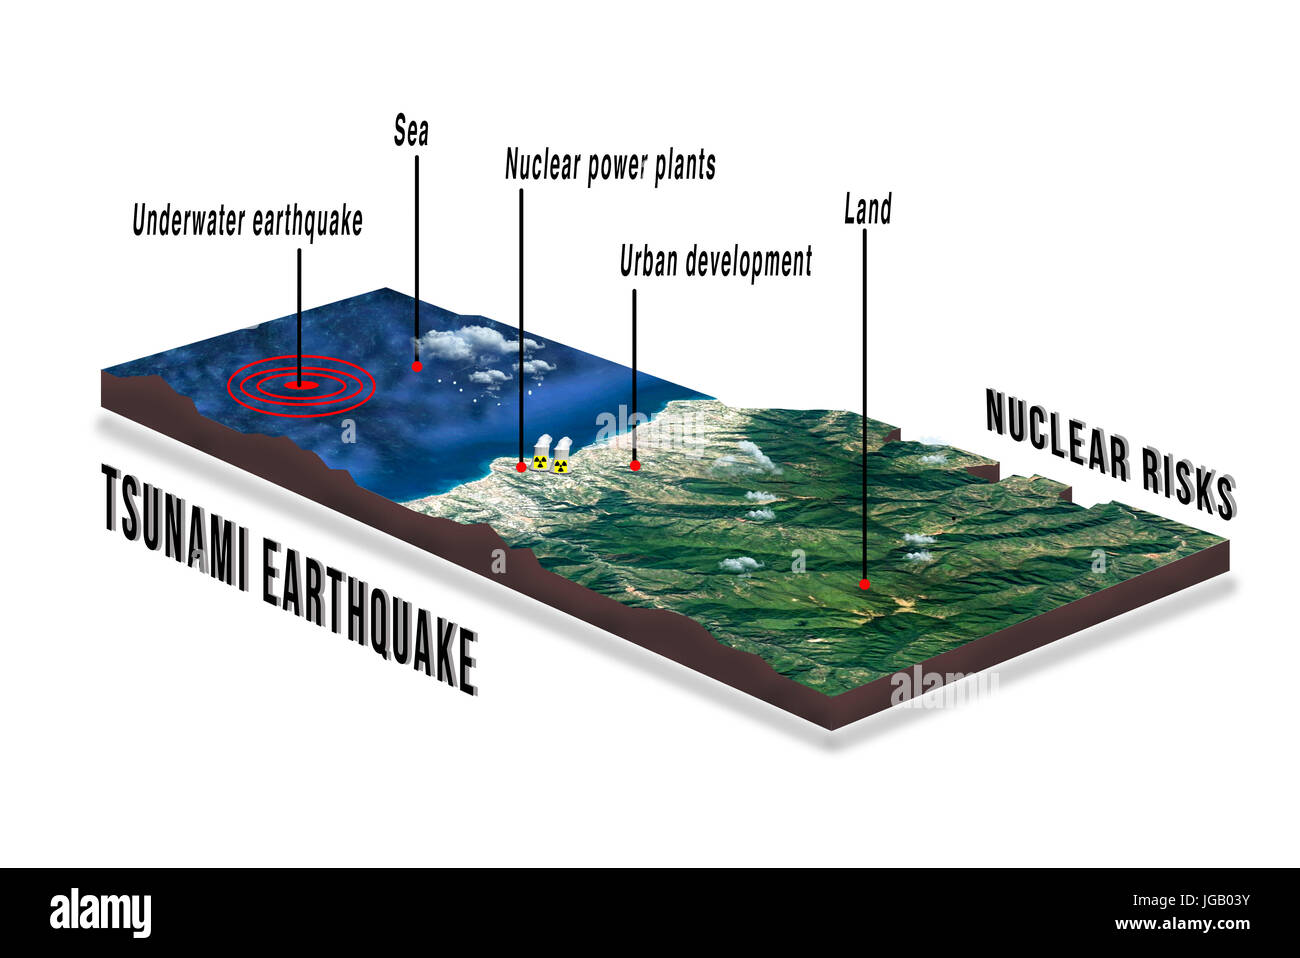 Tsunami earthquake effects on a nuclear power plant - Stock Image